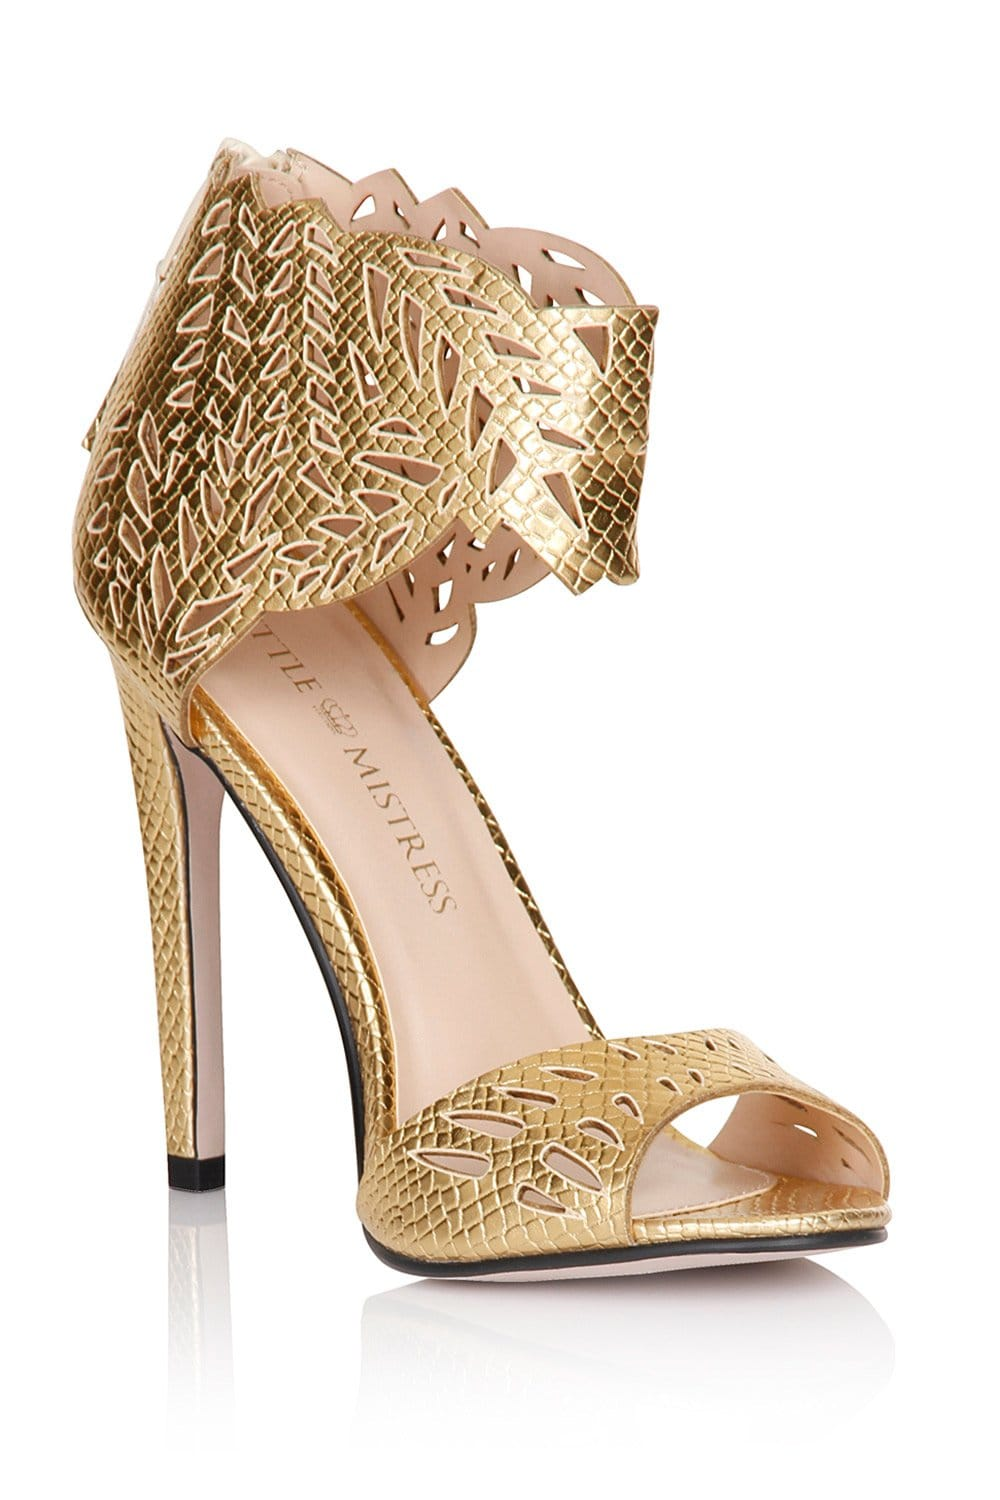 Little Mistress Footwear Gold Cut Out Ankle Cuff Heels - Little ...